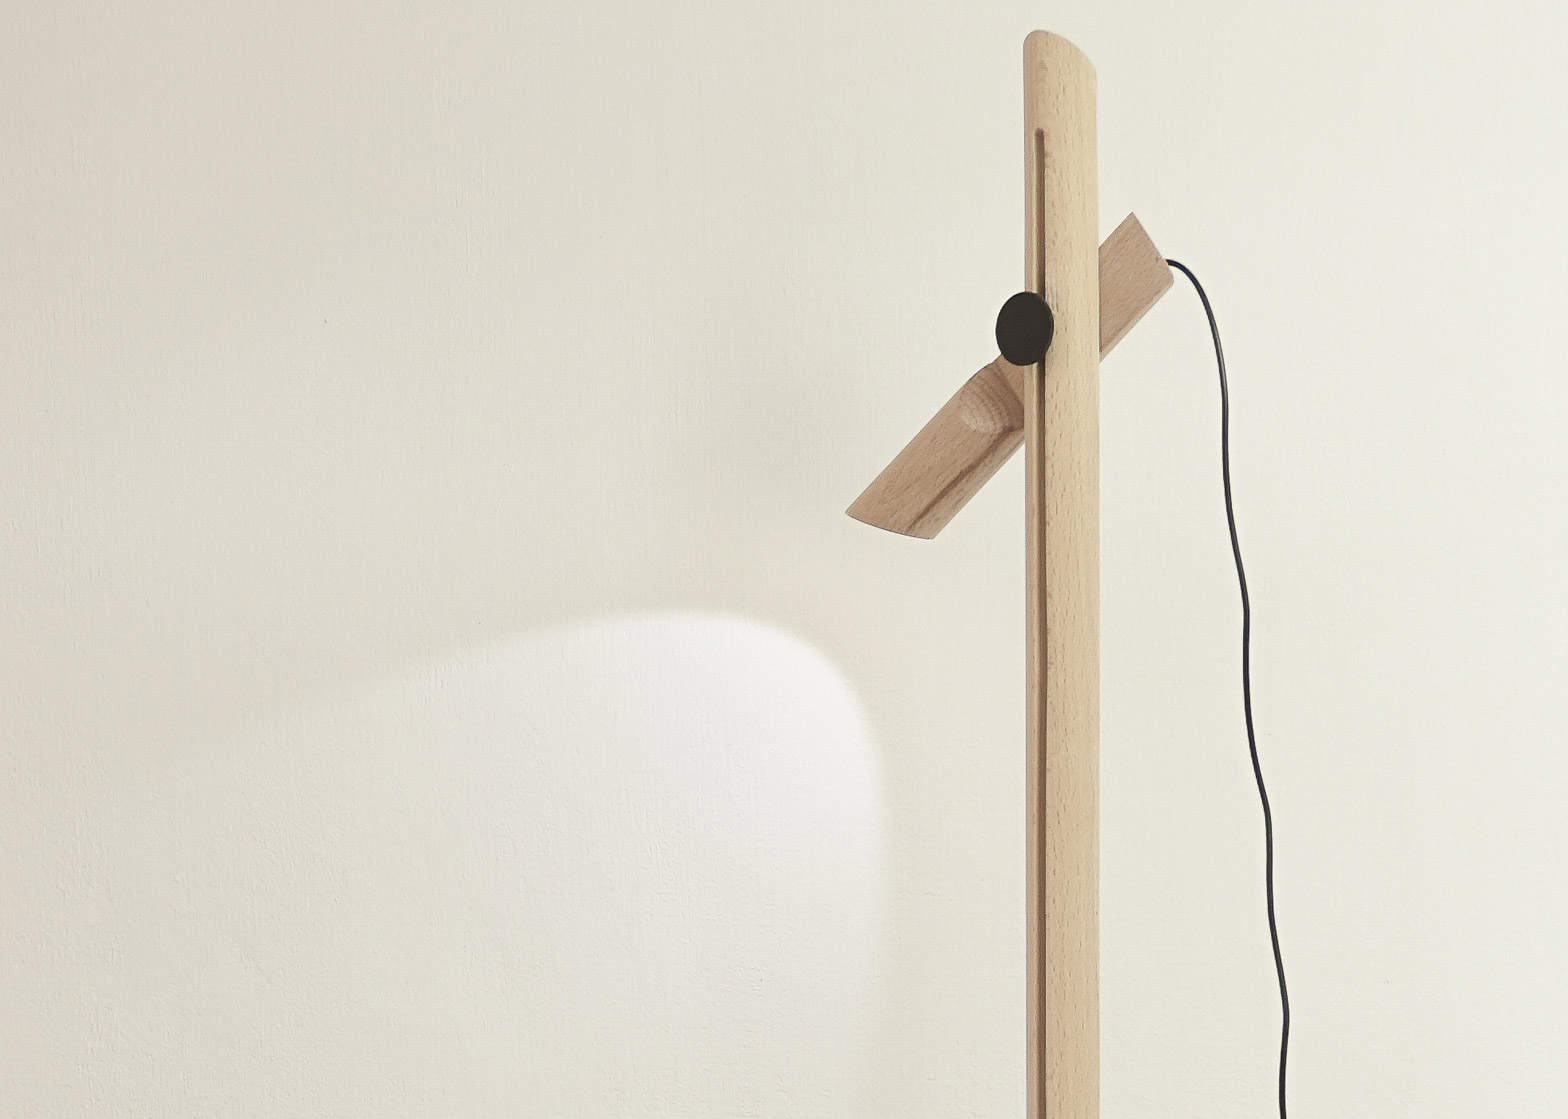 Poise lamp by Saif Faisal